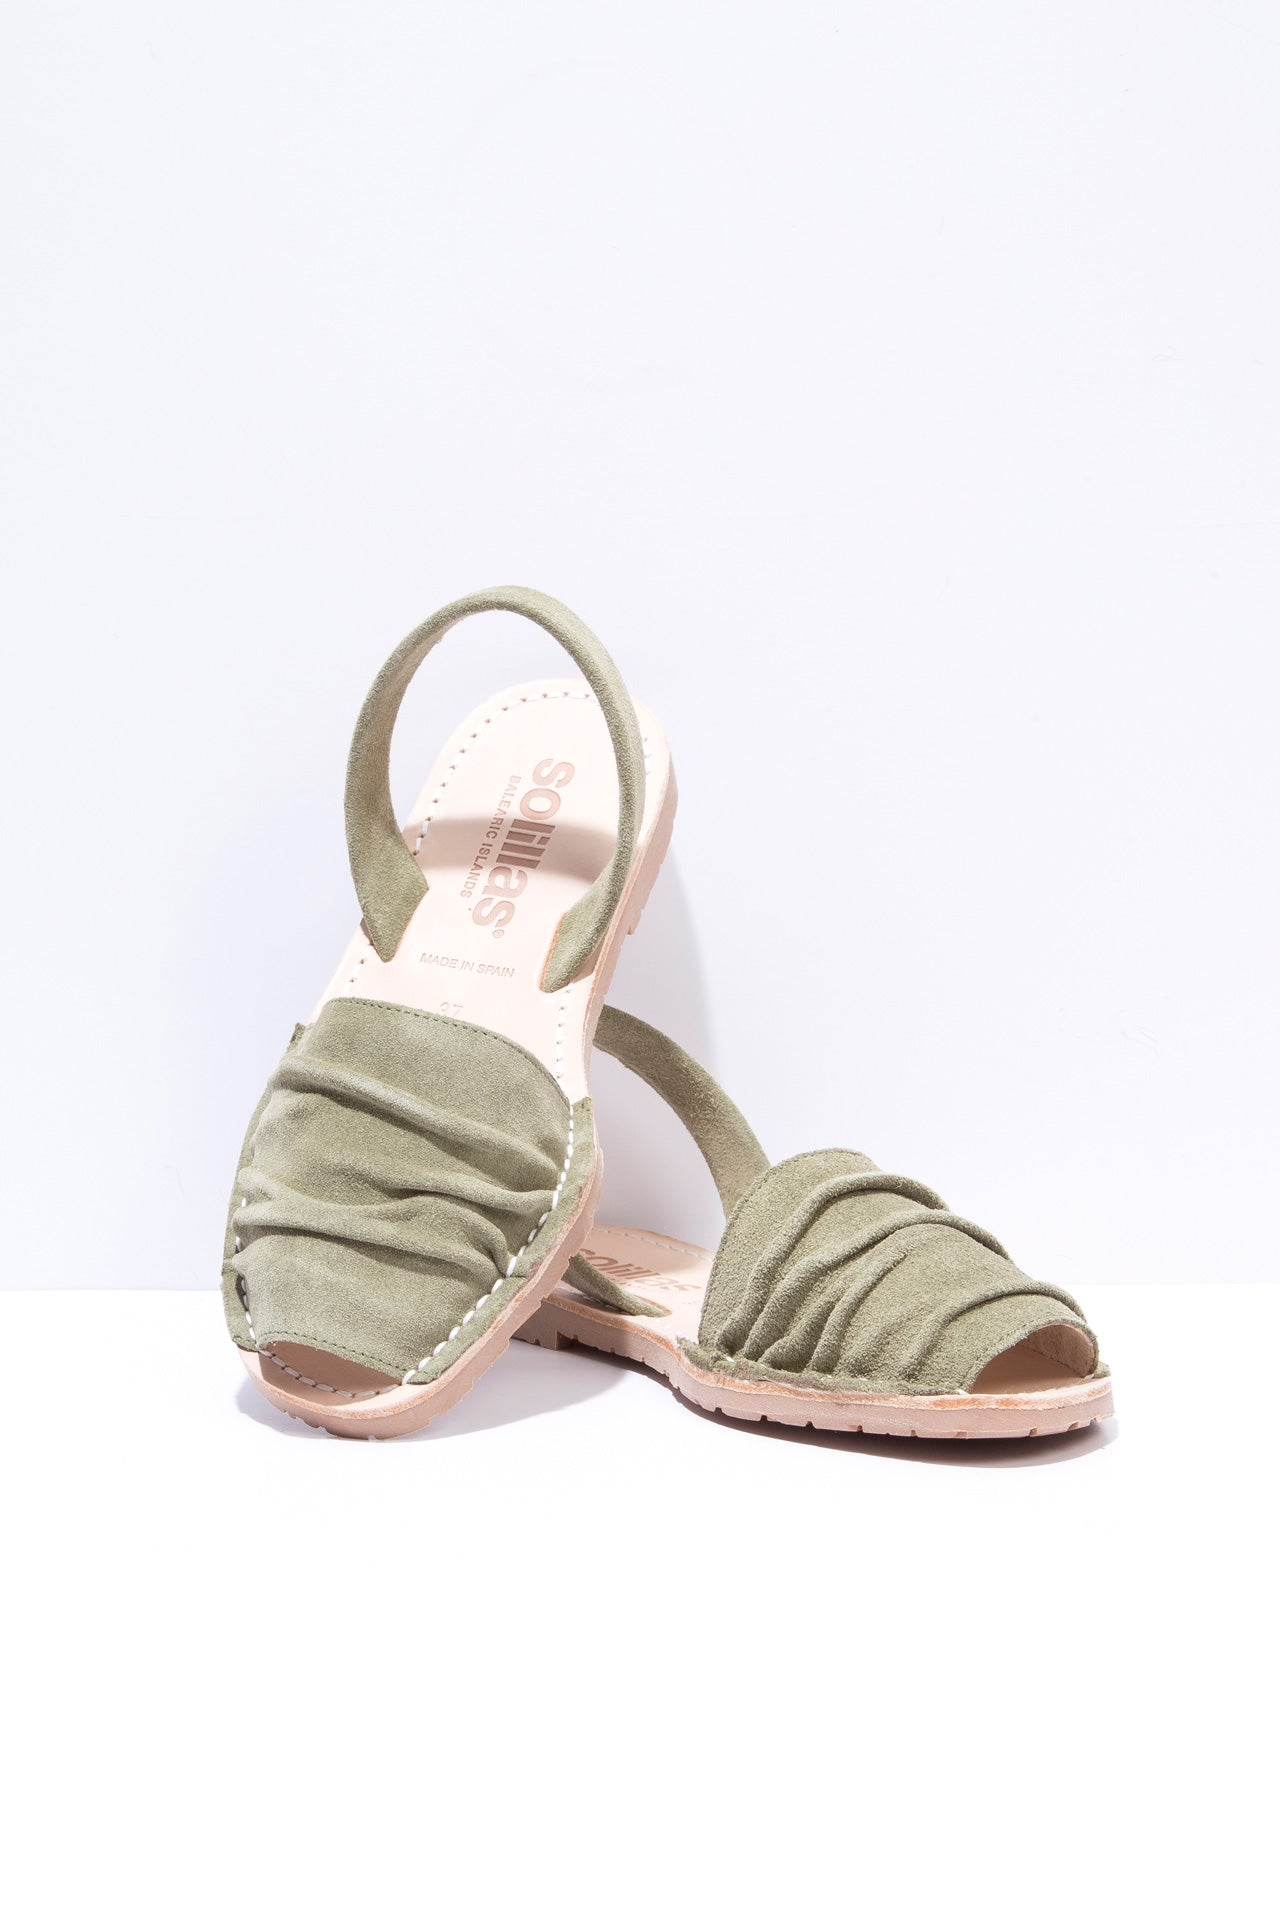 Laia - Ruffled Suede Menorcan sandals